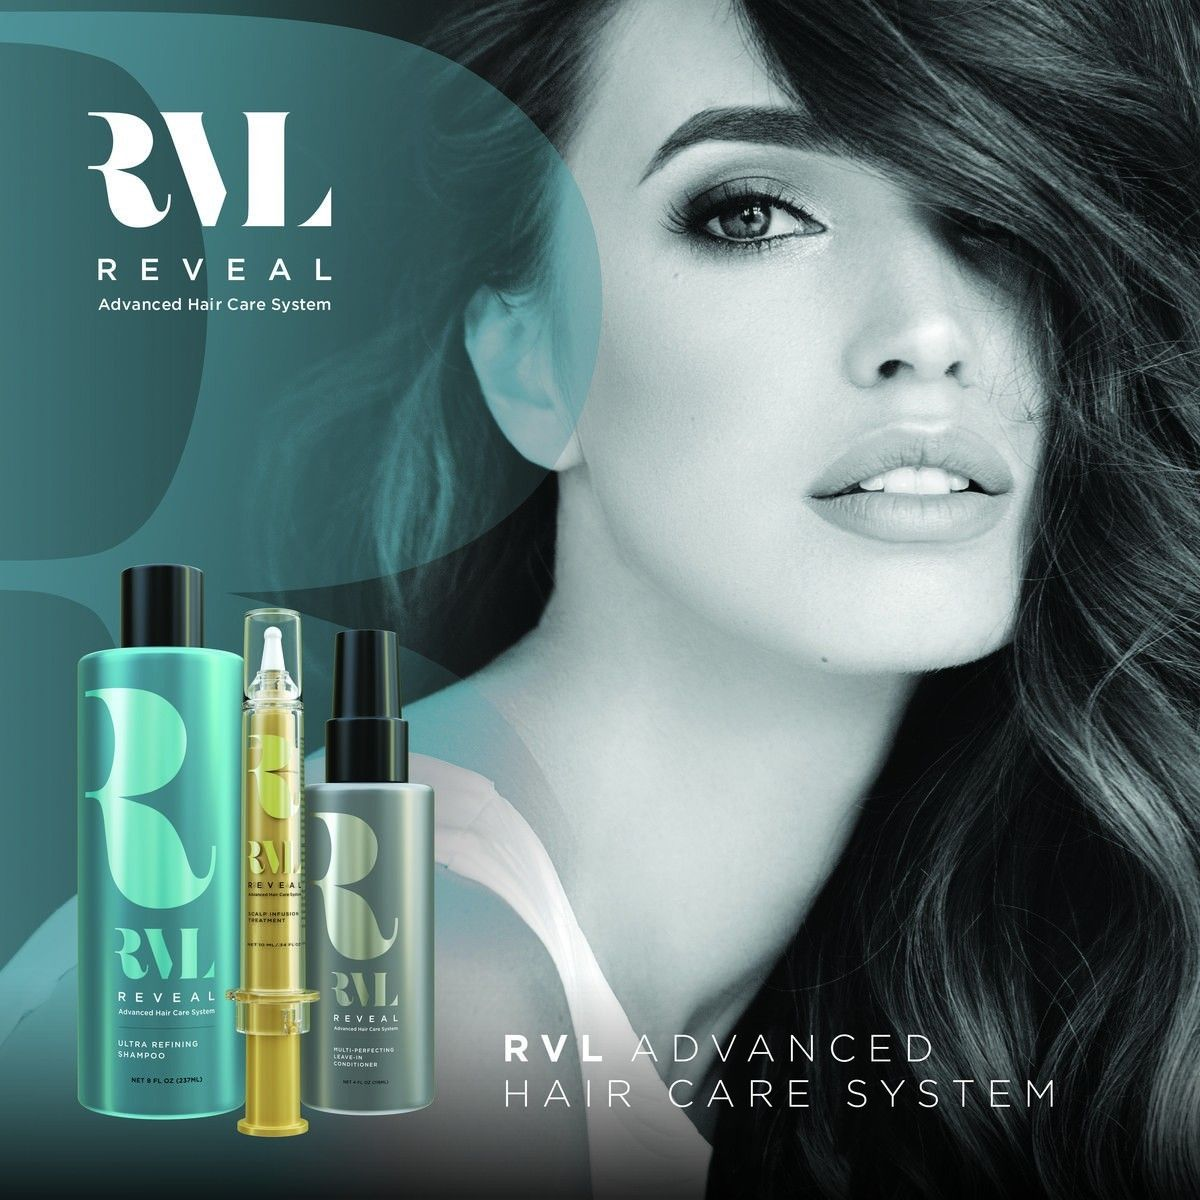 The Revolutionary Rvl Advanced Hair Care System Includes A Cleansing Shampoo Scalp Serum And Hydrating Leave In Conditioner All With De Guzellik Deri Unluler